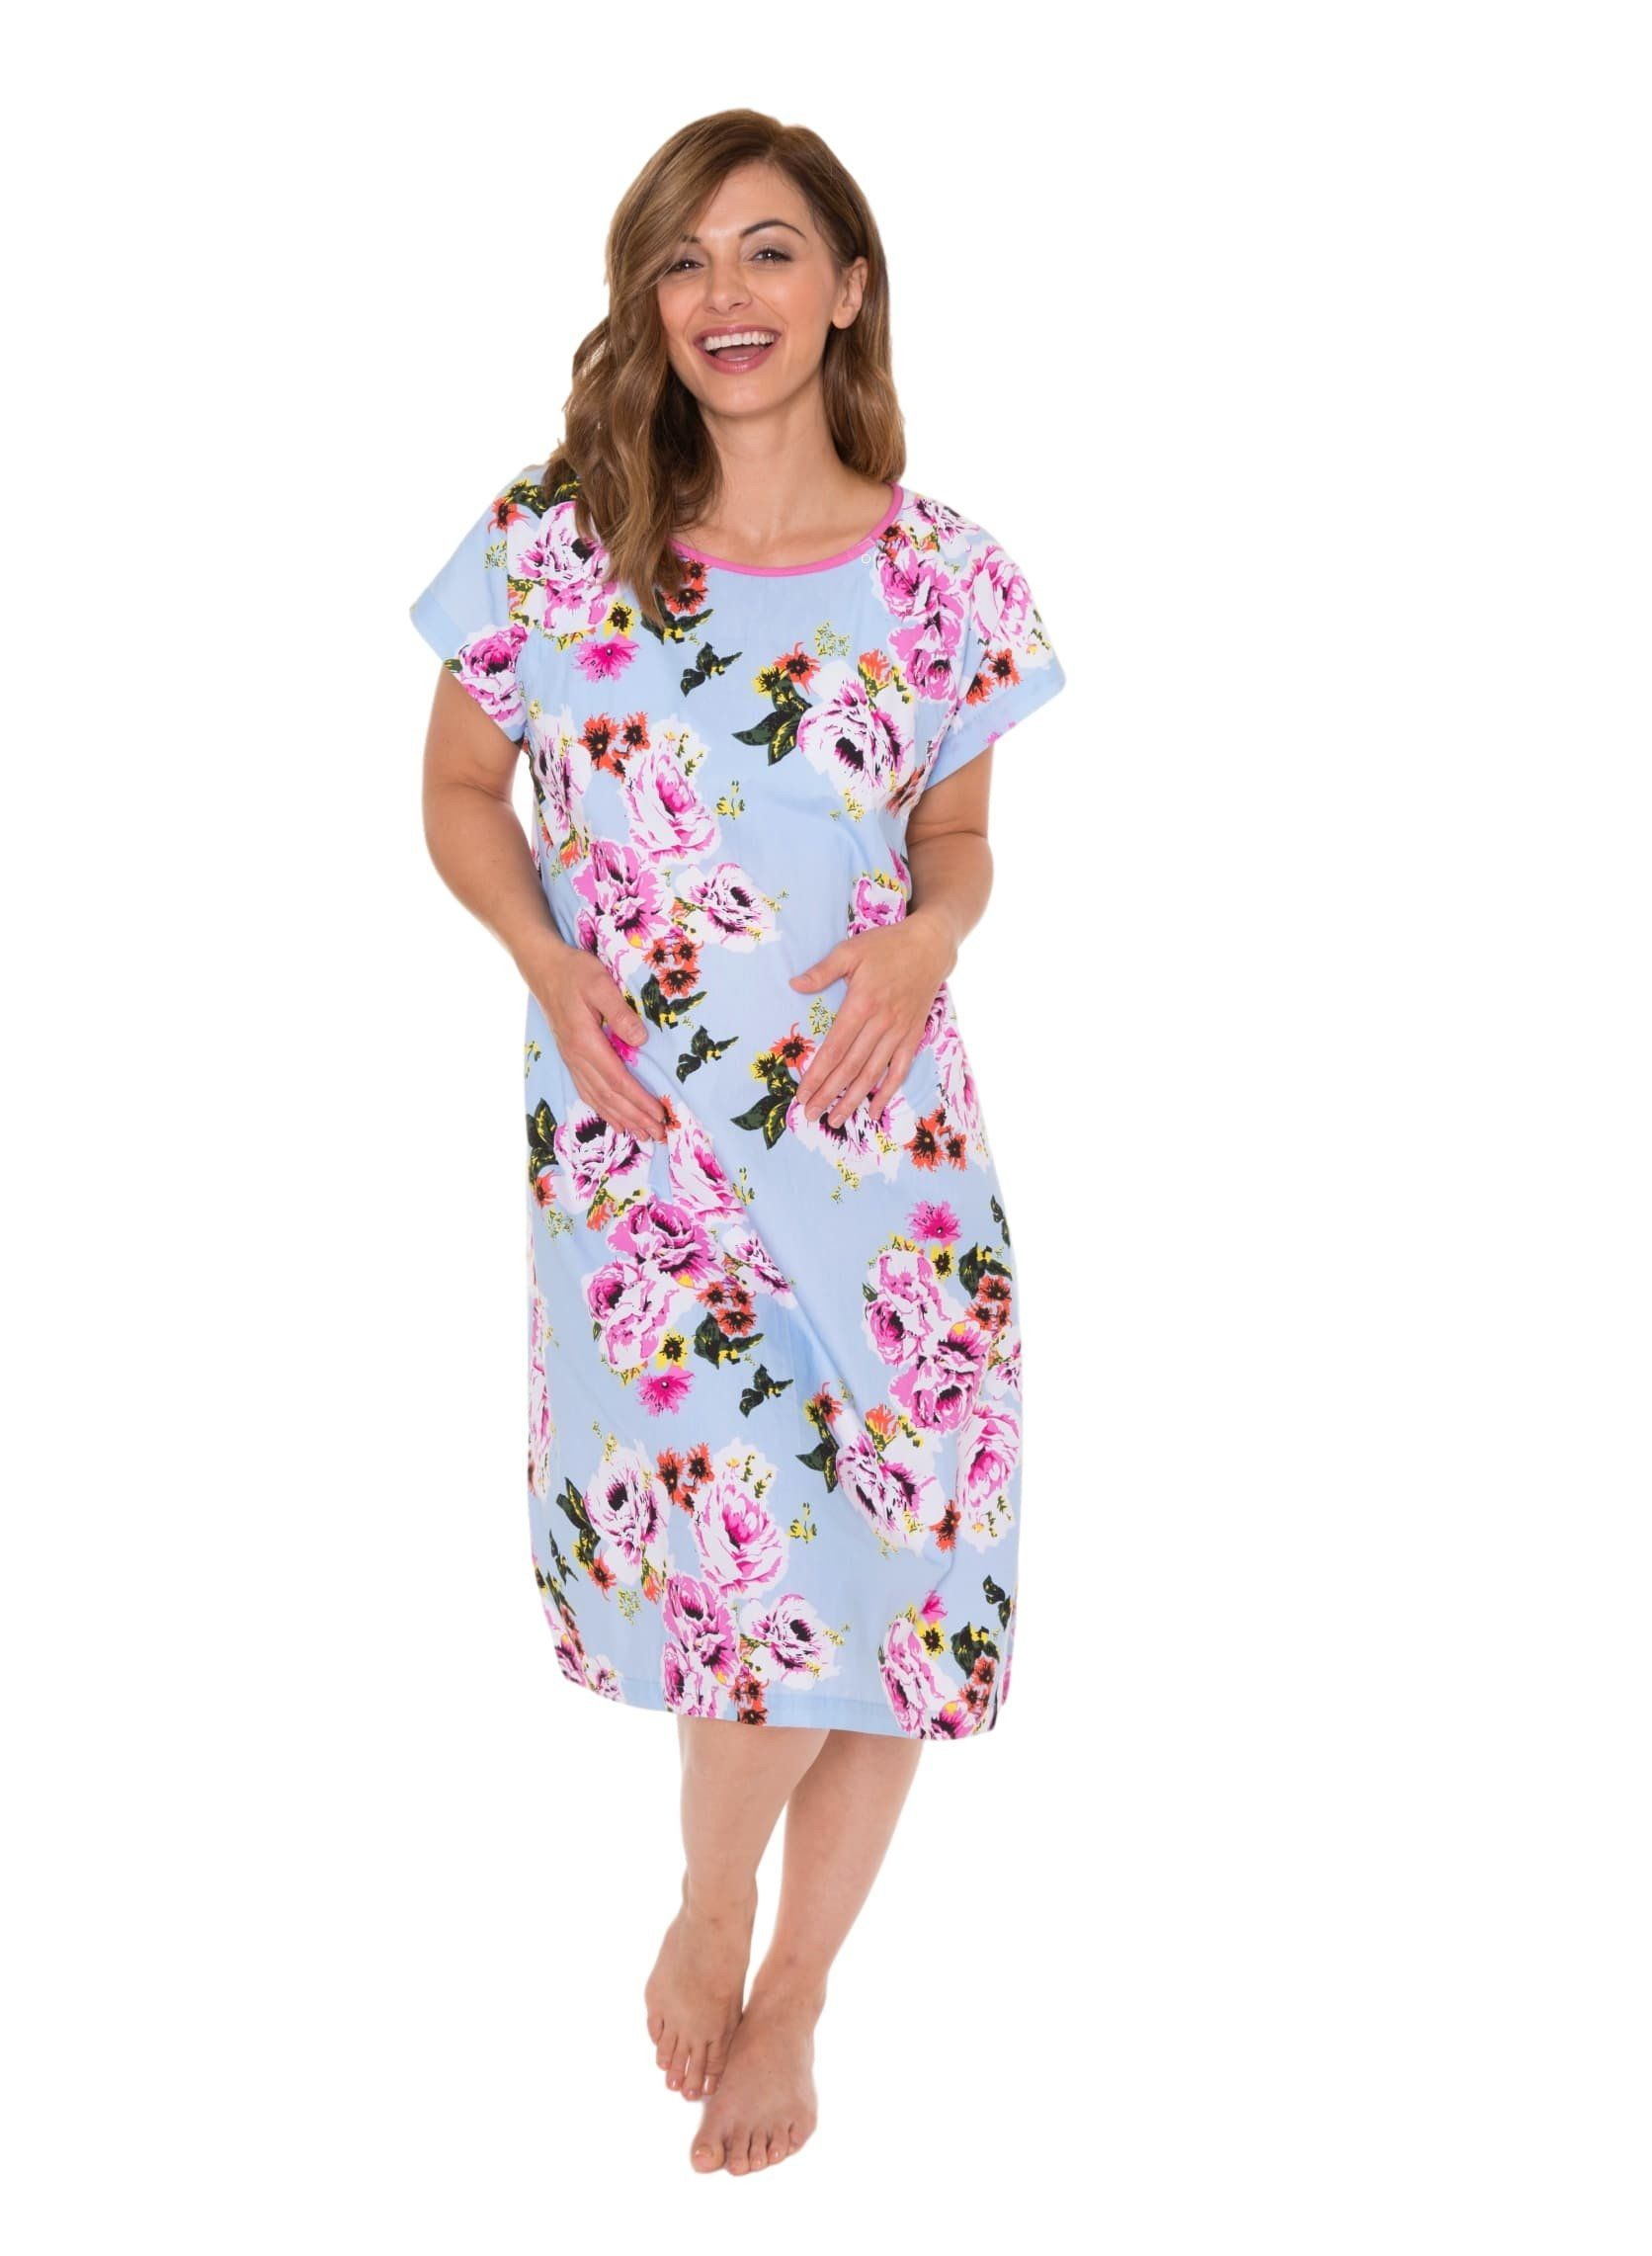 Isla Gownie Maternity Delivery Labor Hospital Birthing Gown ...